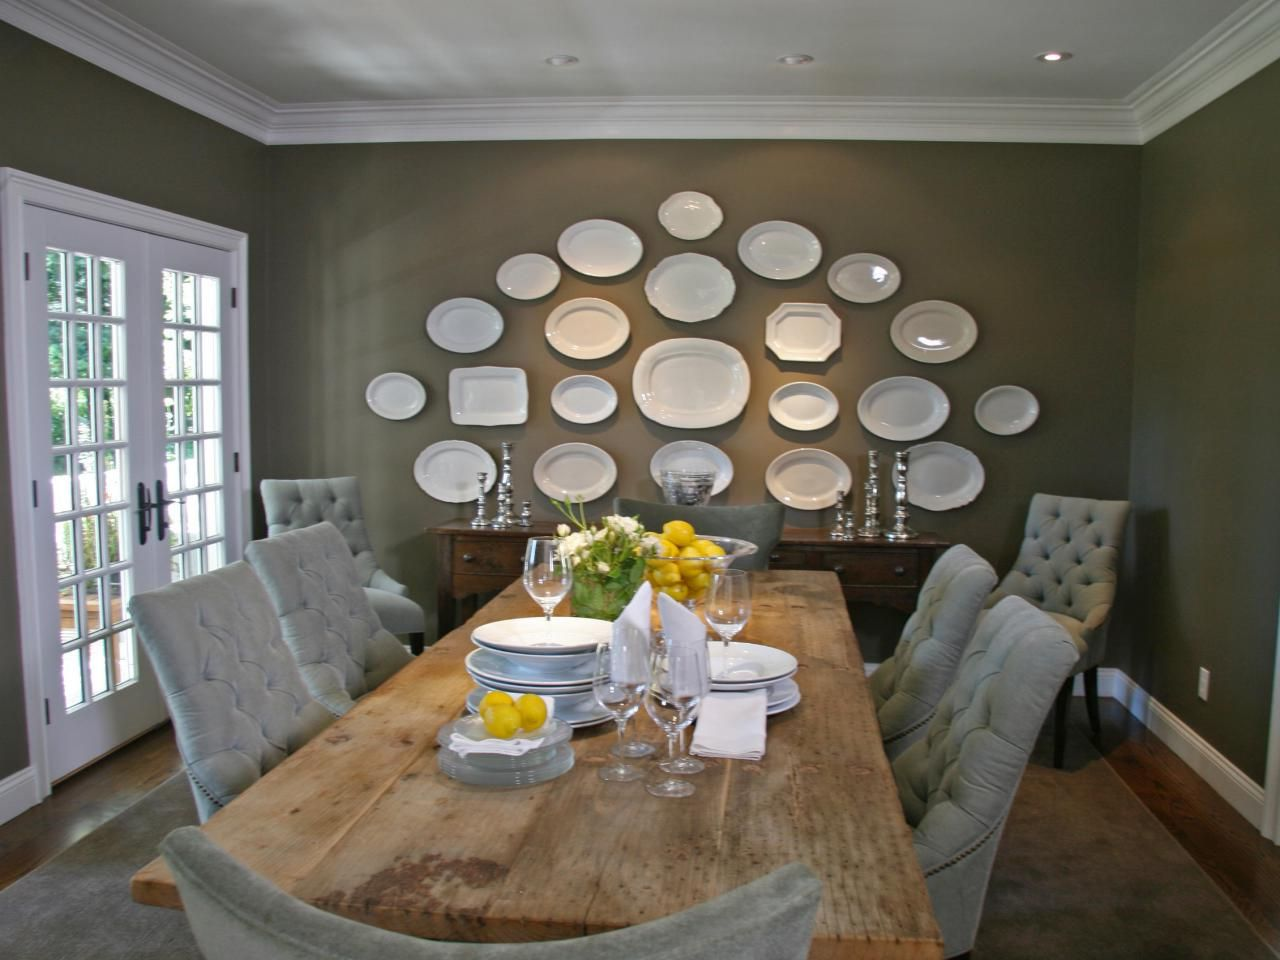 mesmerizing-long-dining-room-with-exquisite-white-decorative-plates-on-mud-green-colored-wall